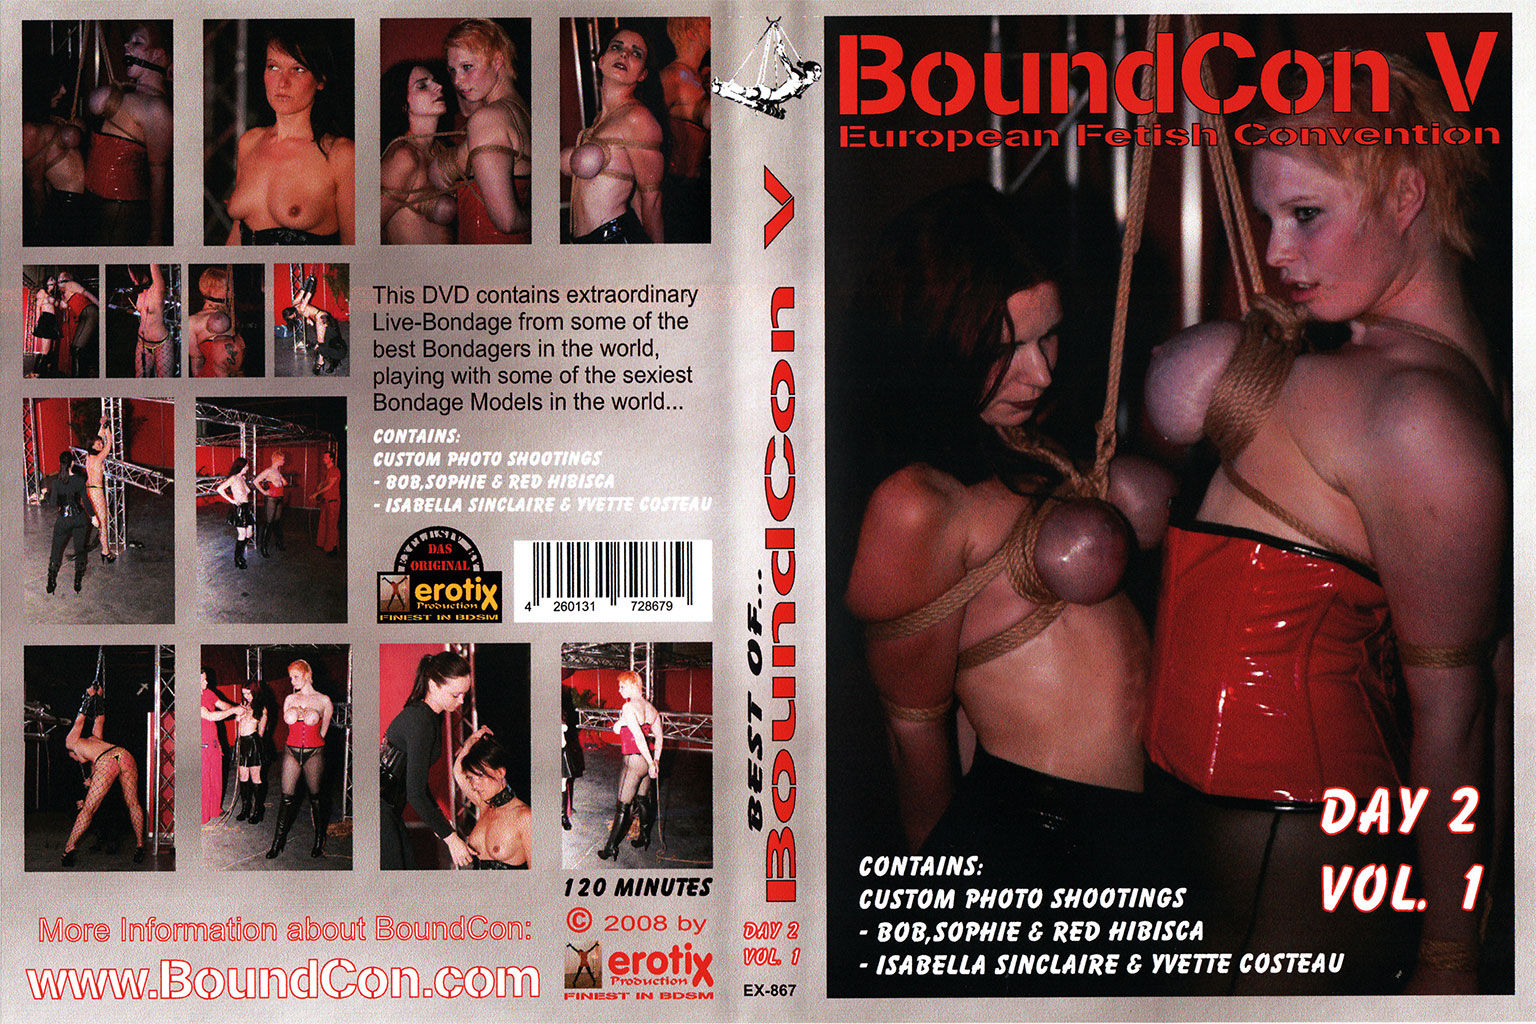 BoundCon V, Day 2, Volume 1